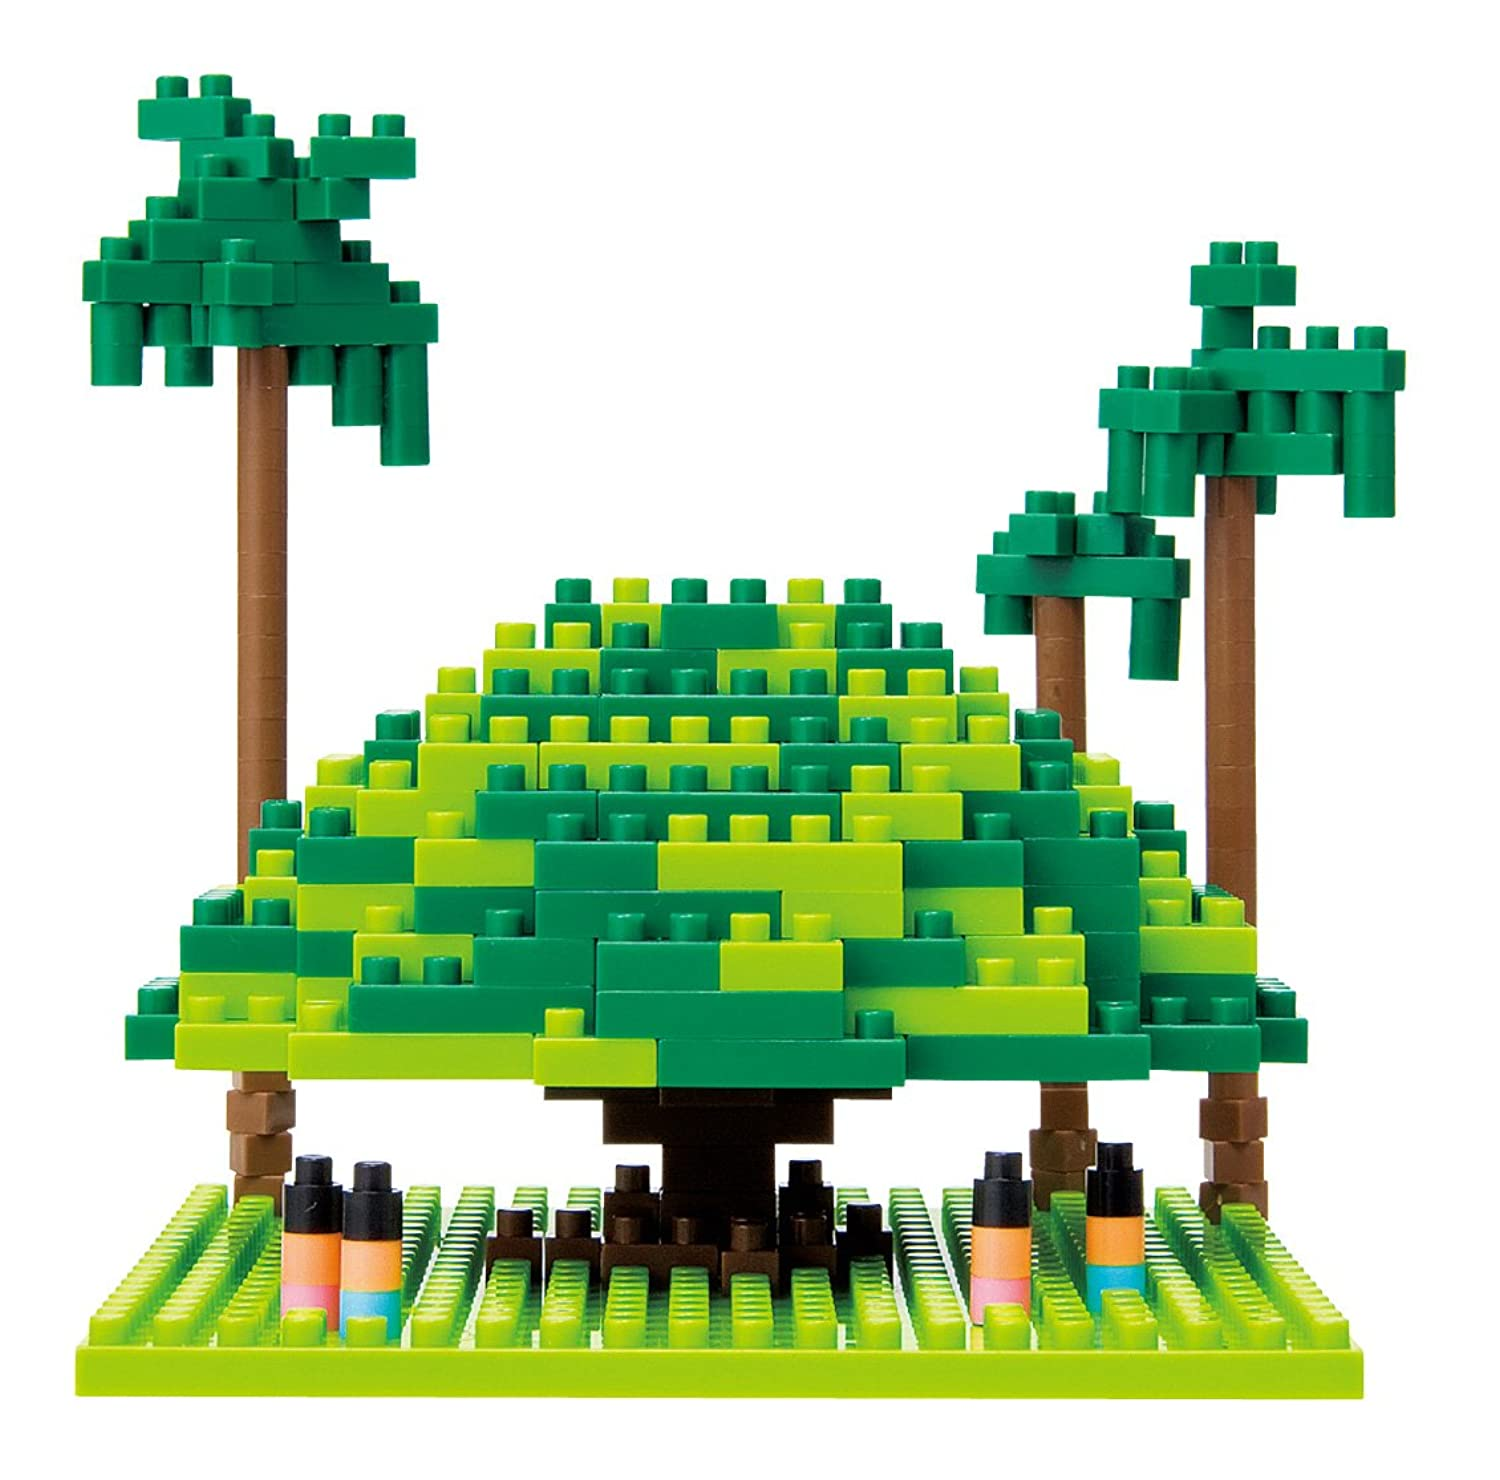 nanoblock Giant Banyan Tree 南国の大きな木